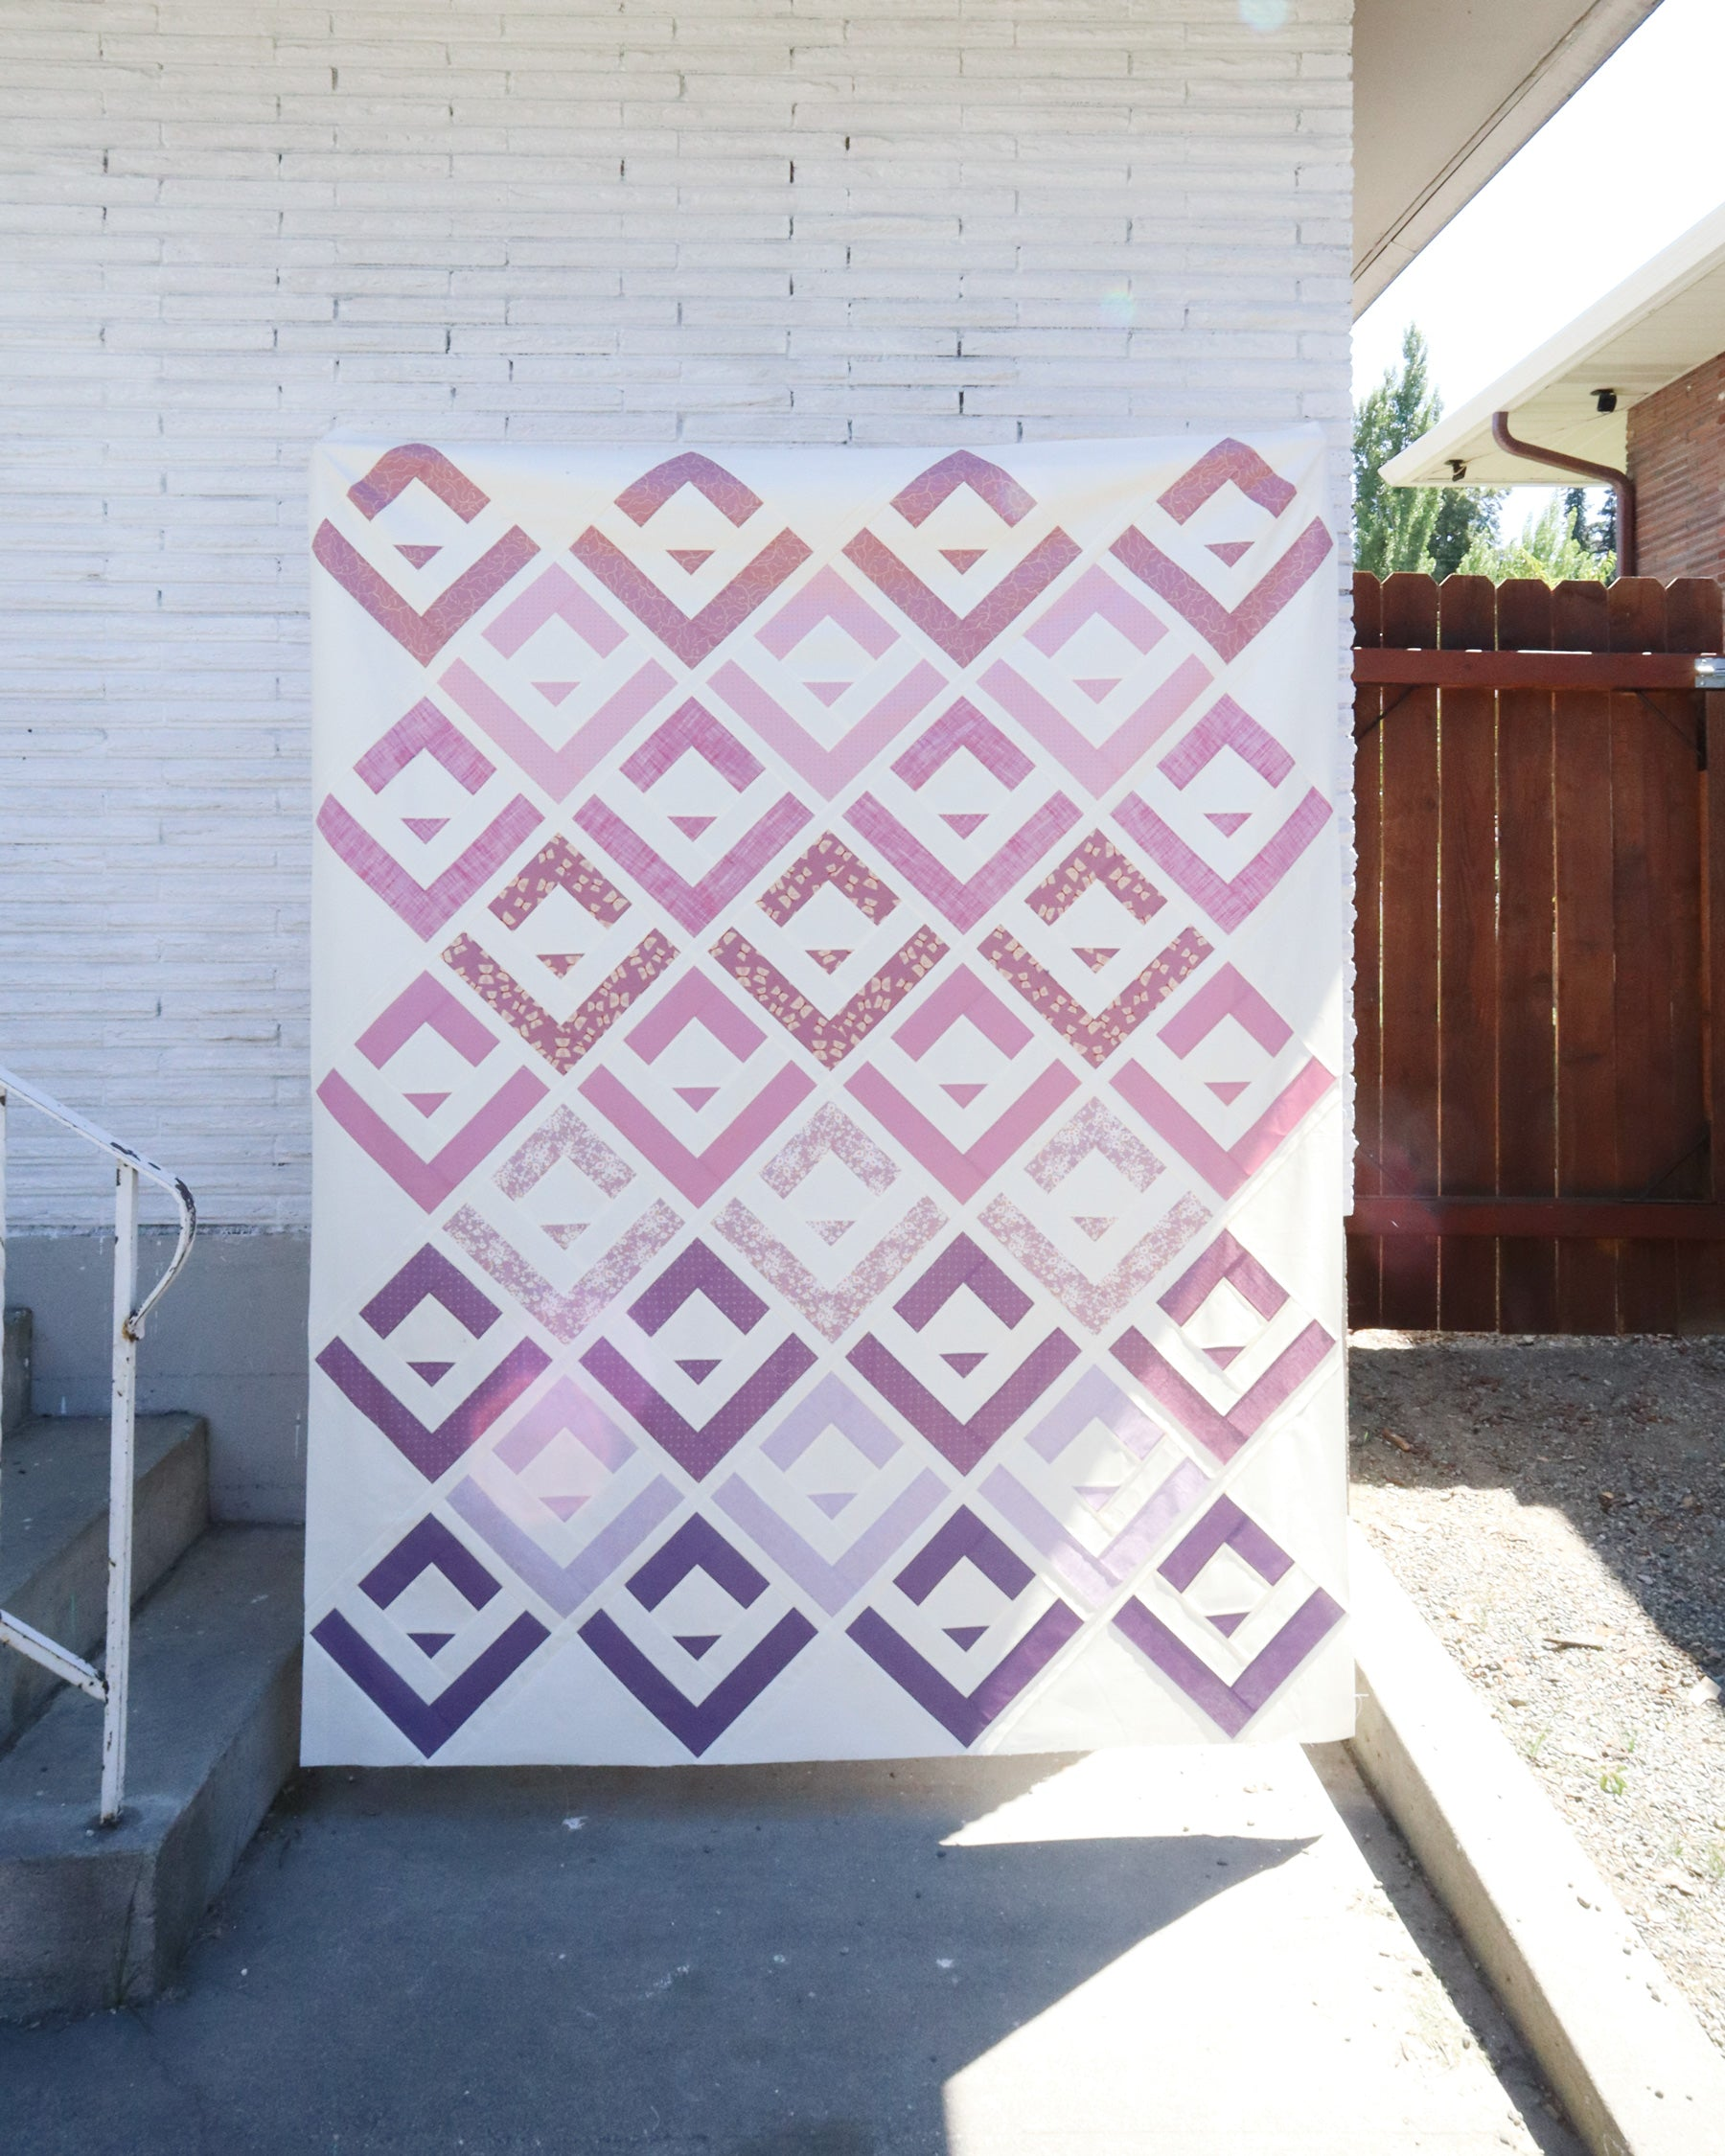 Purple Cabin Valley quilt by Cotton and Joy - a modern take on the classic log cabin quilt